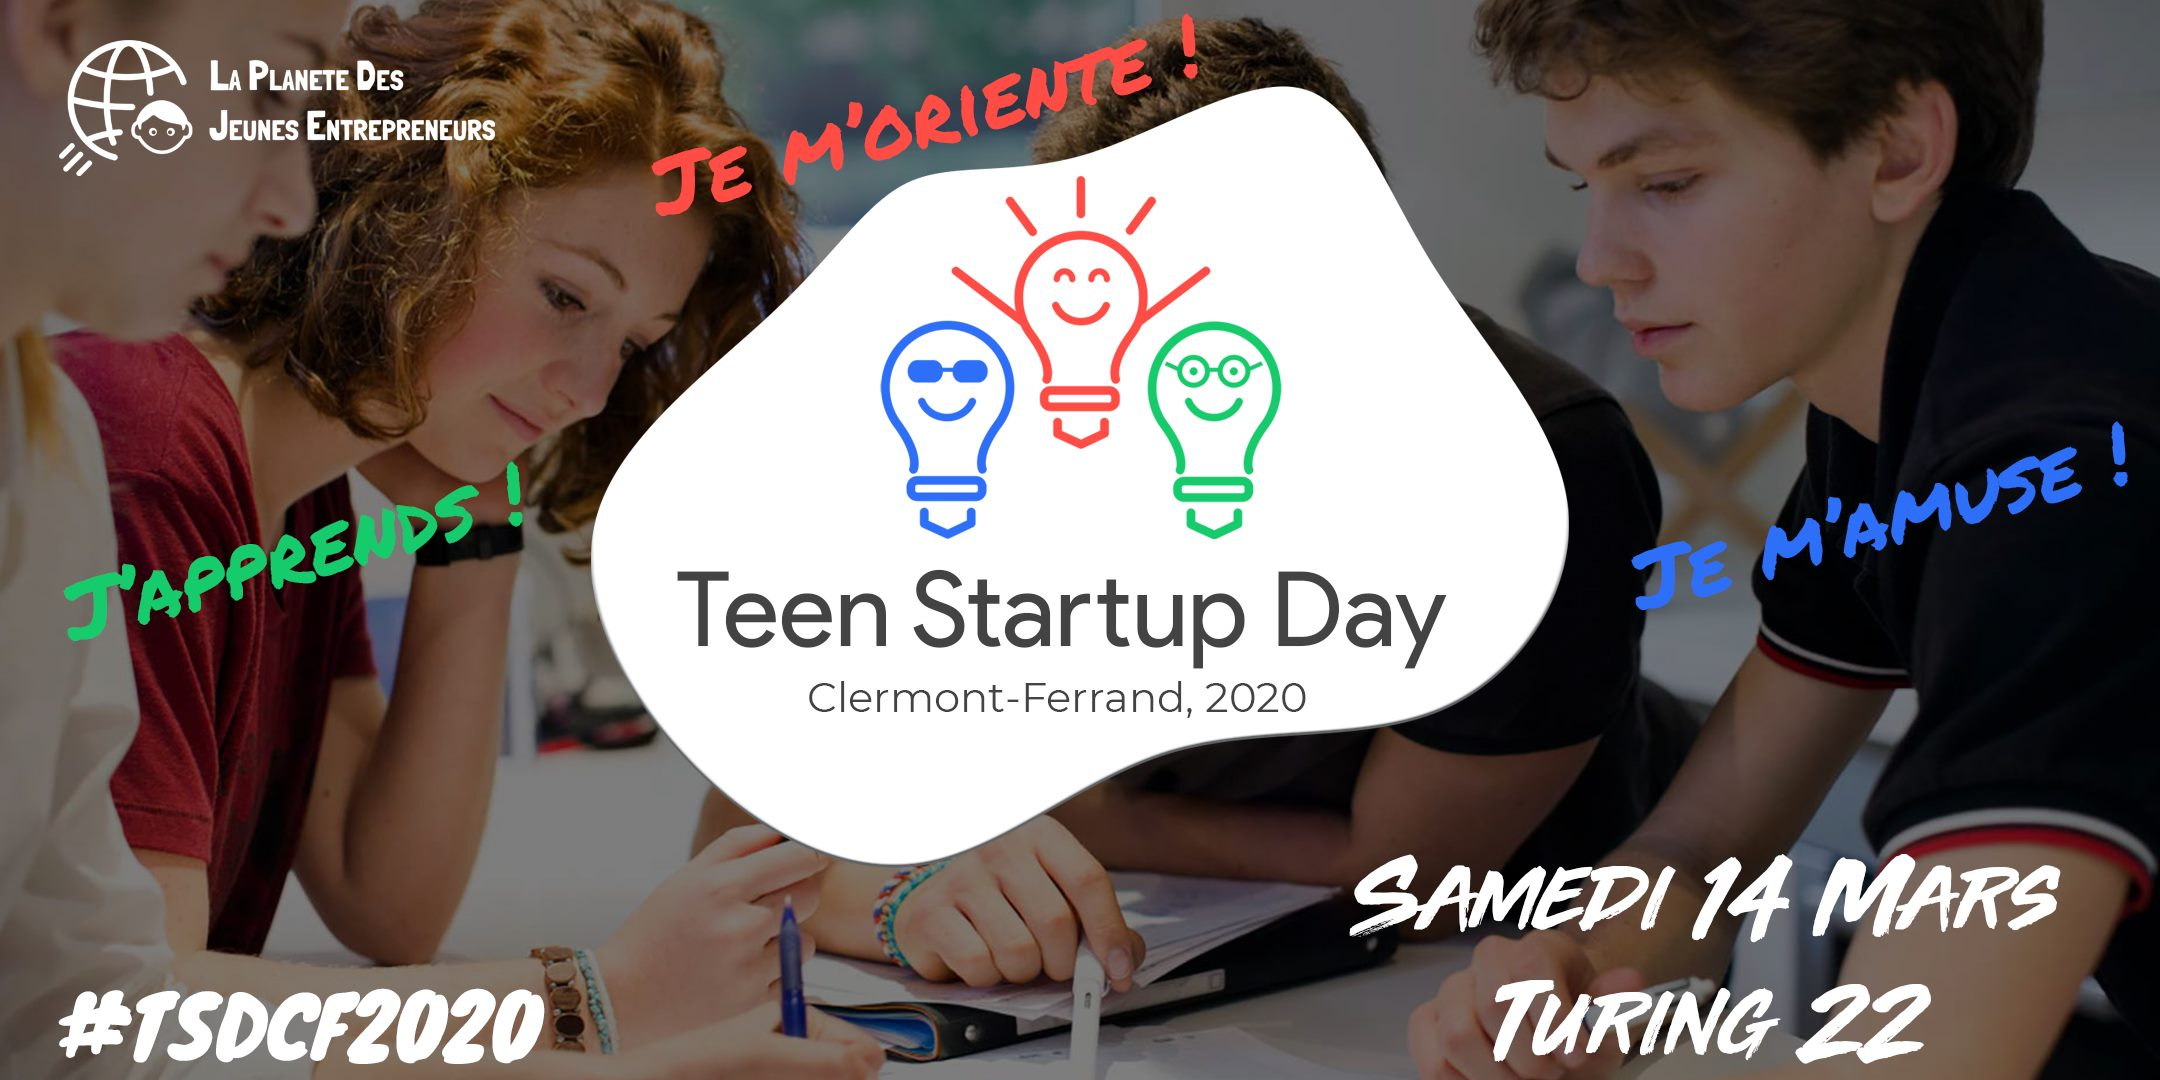 Teen Start-Up Day @ Turing 22 | Clermont-Ferrand | Auvergne-Rhône-Alpes | France